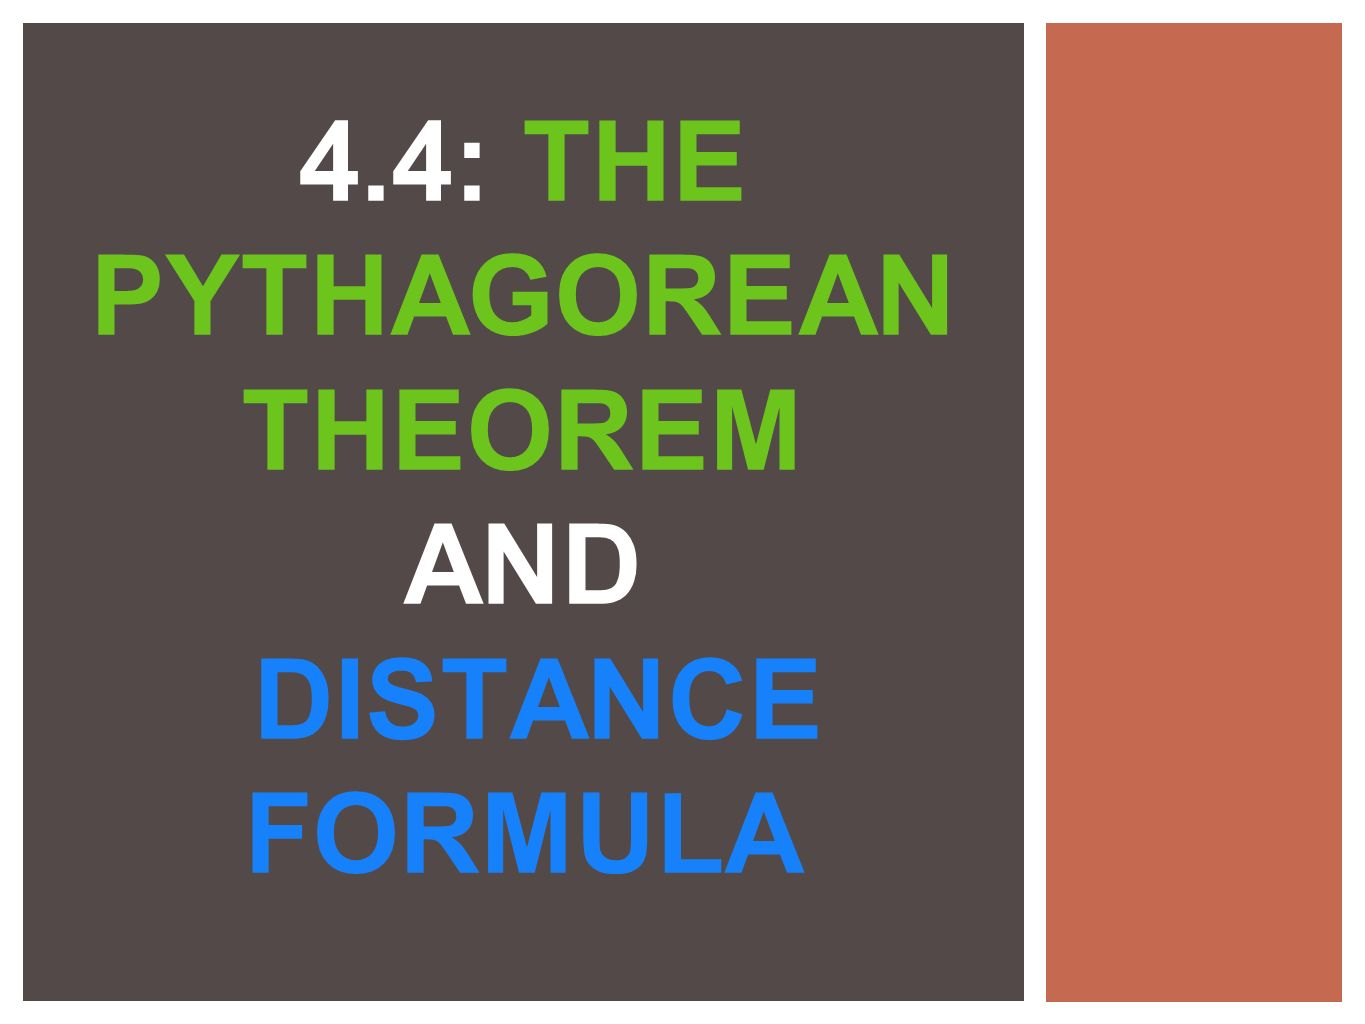 4.4: THE PYTHAGOREAN THEOREM AND DISTANCE FORMULA